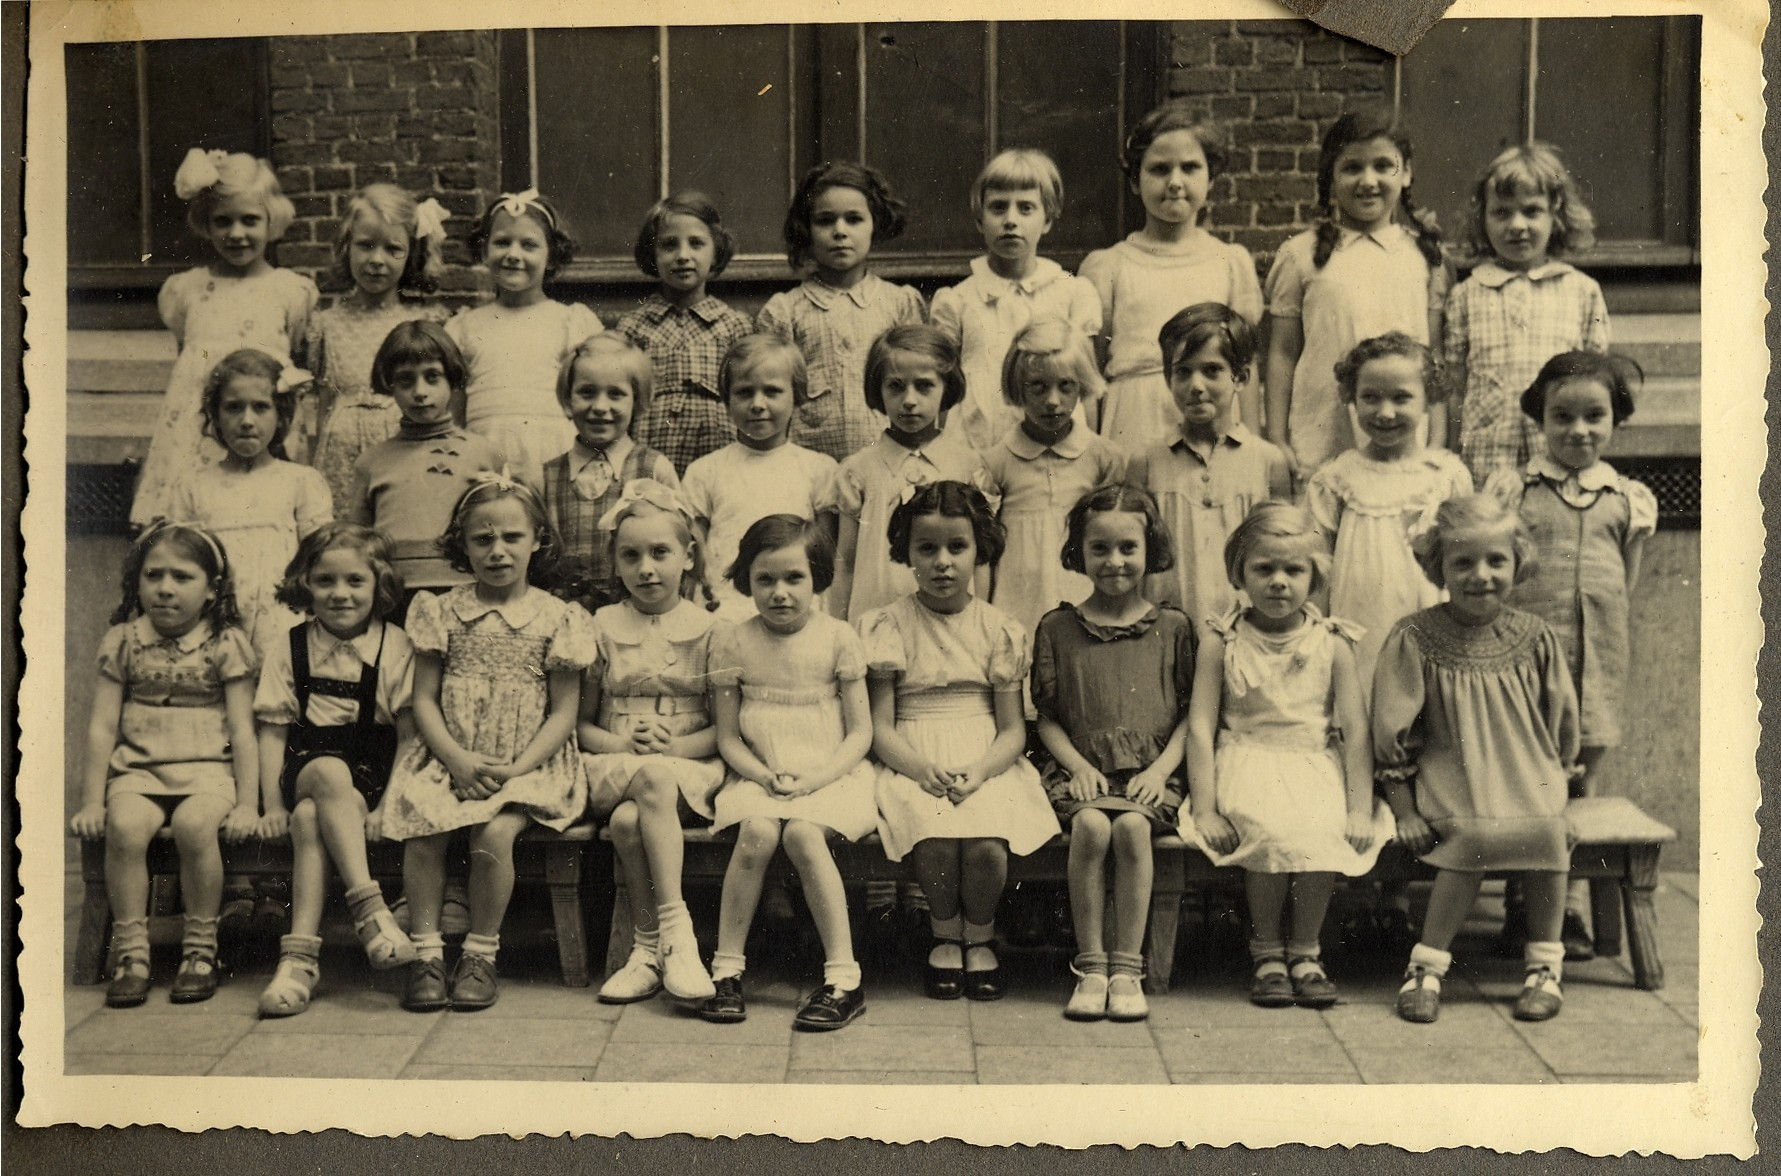 Class portrait of preschoolers in a kindergarten in Antwerp before the war.   Among those pictured is Augusta Feldhorn second from right in the back row.